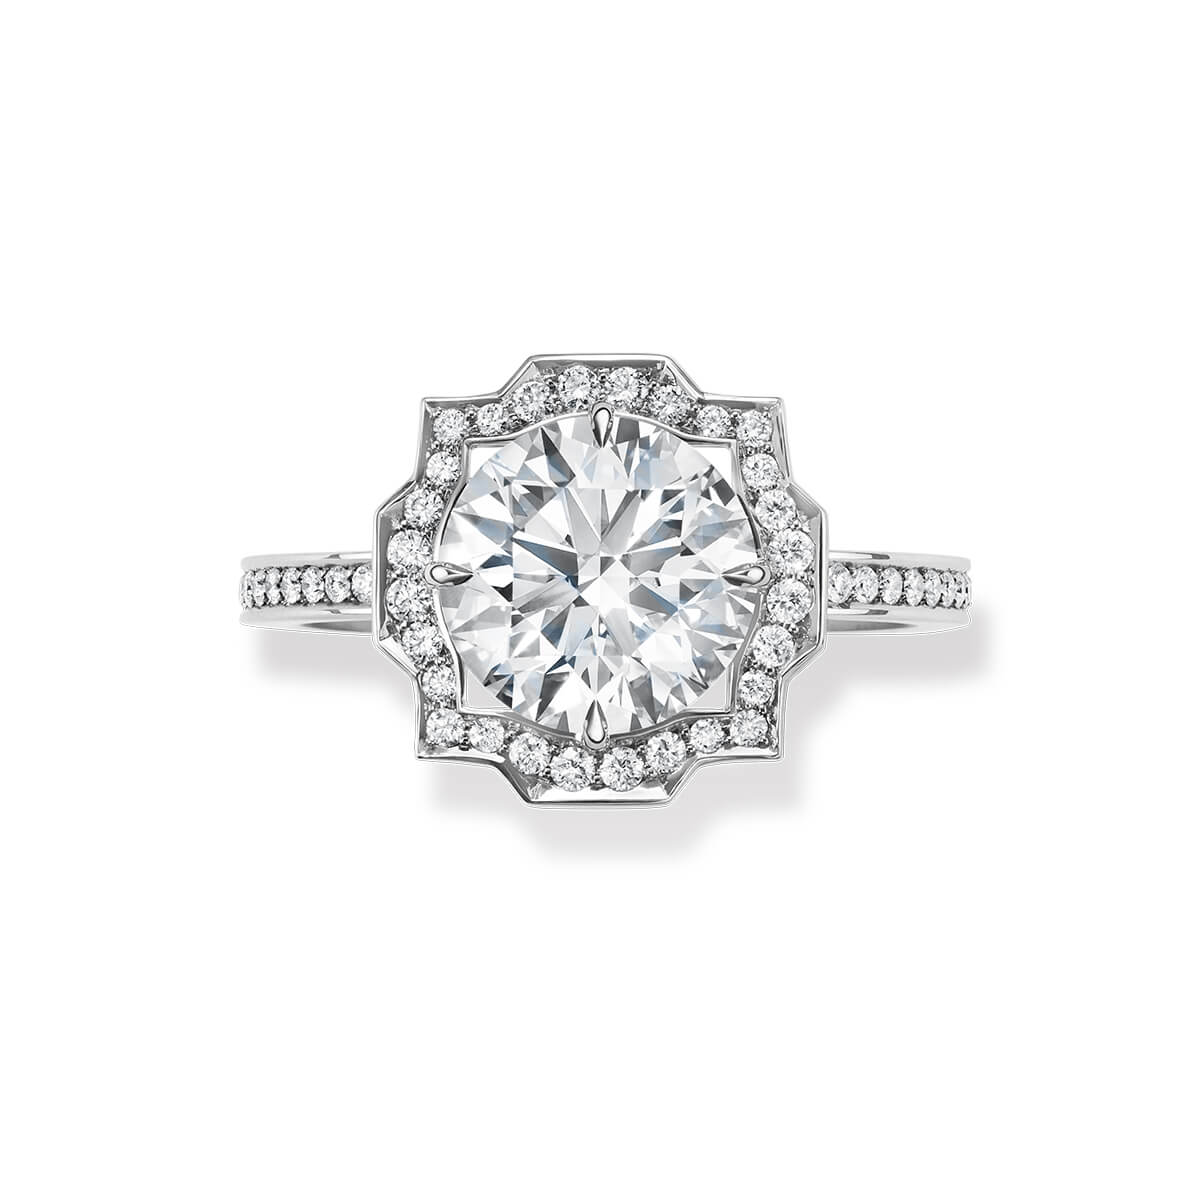 Belle by Harry Winston diamond and platinum engagement ring